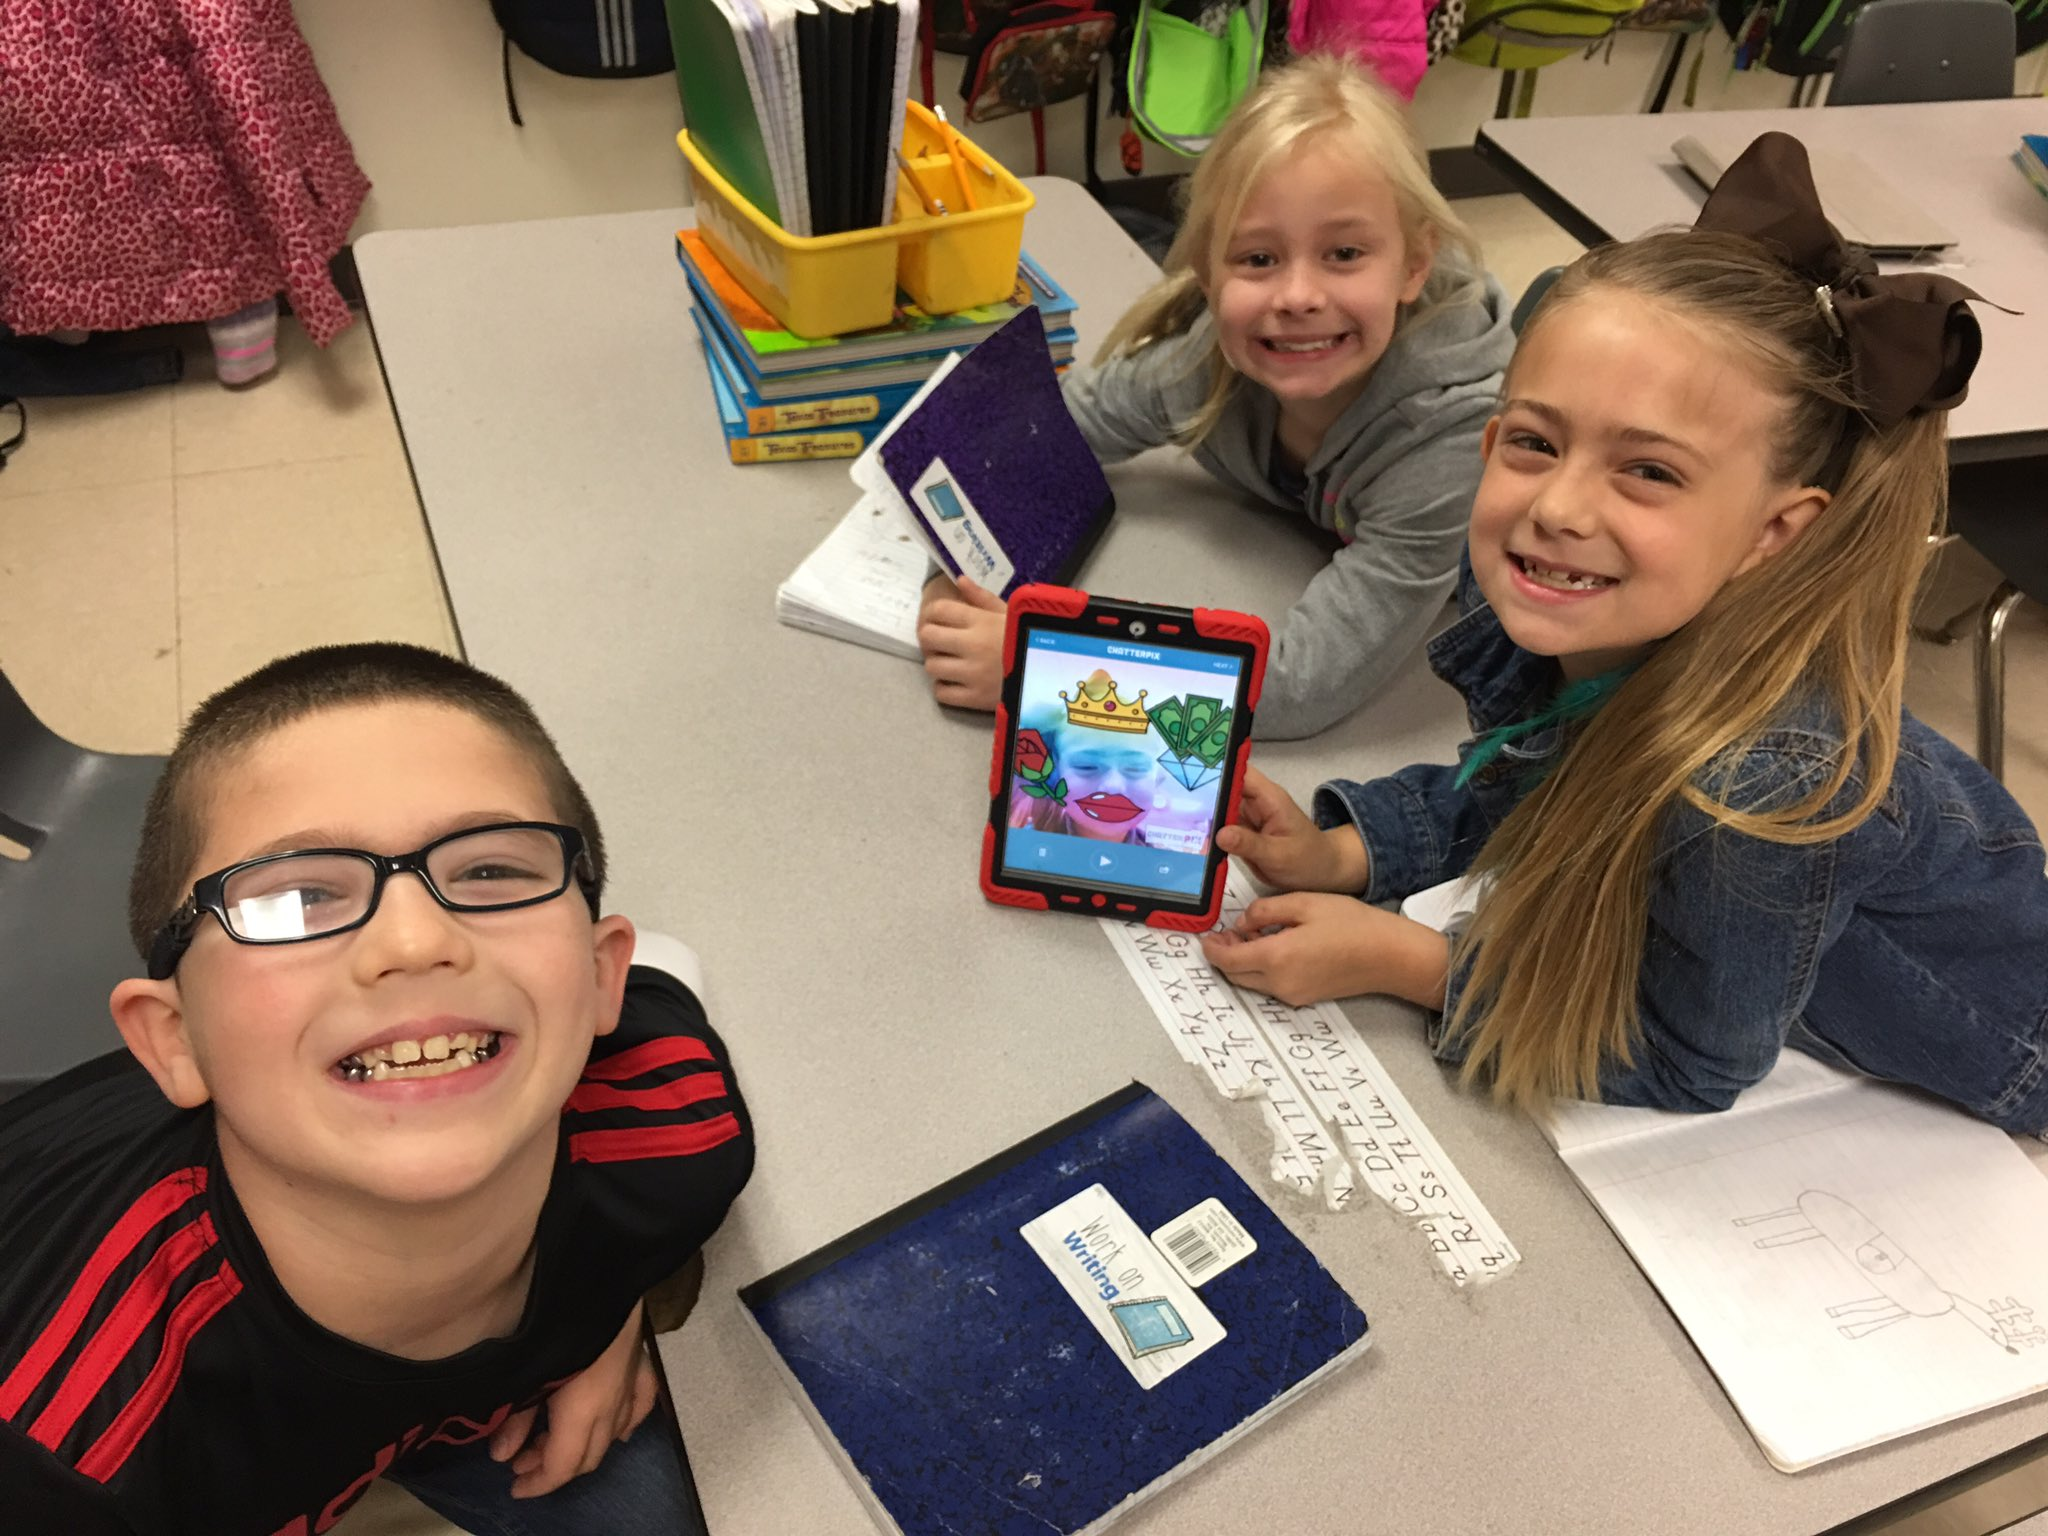 🌈📝Publishing favorite writing piece with #chatterpix #mabanklearns #cekidsmatter https://t.co/6fHEUTMfaB